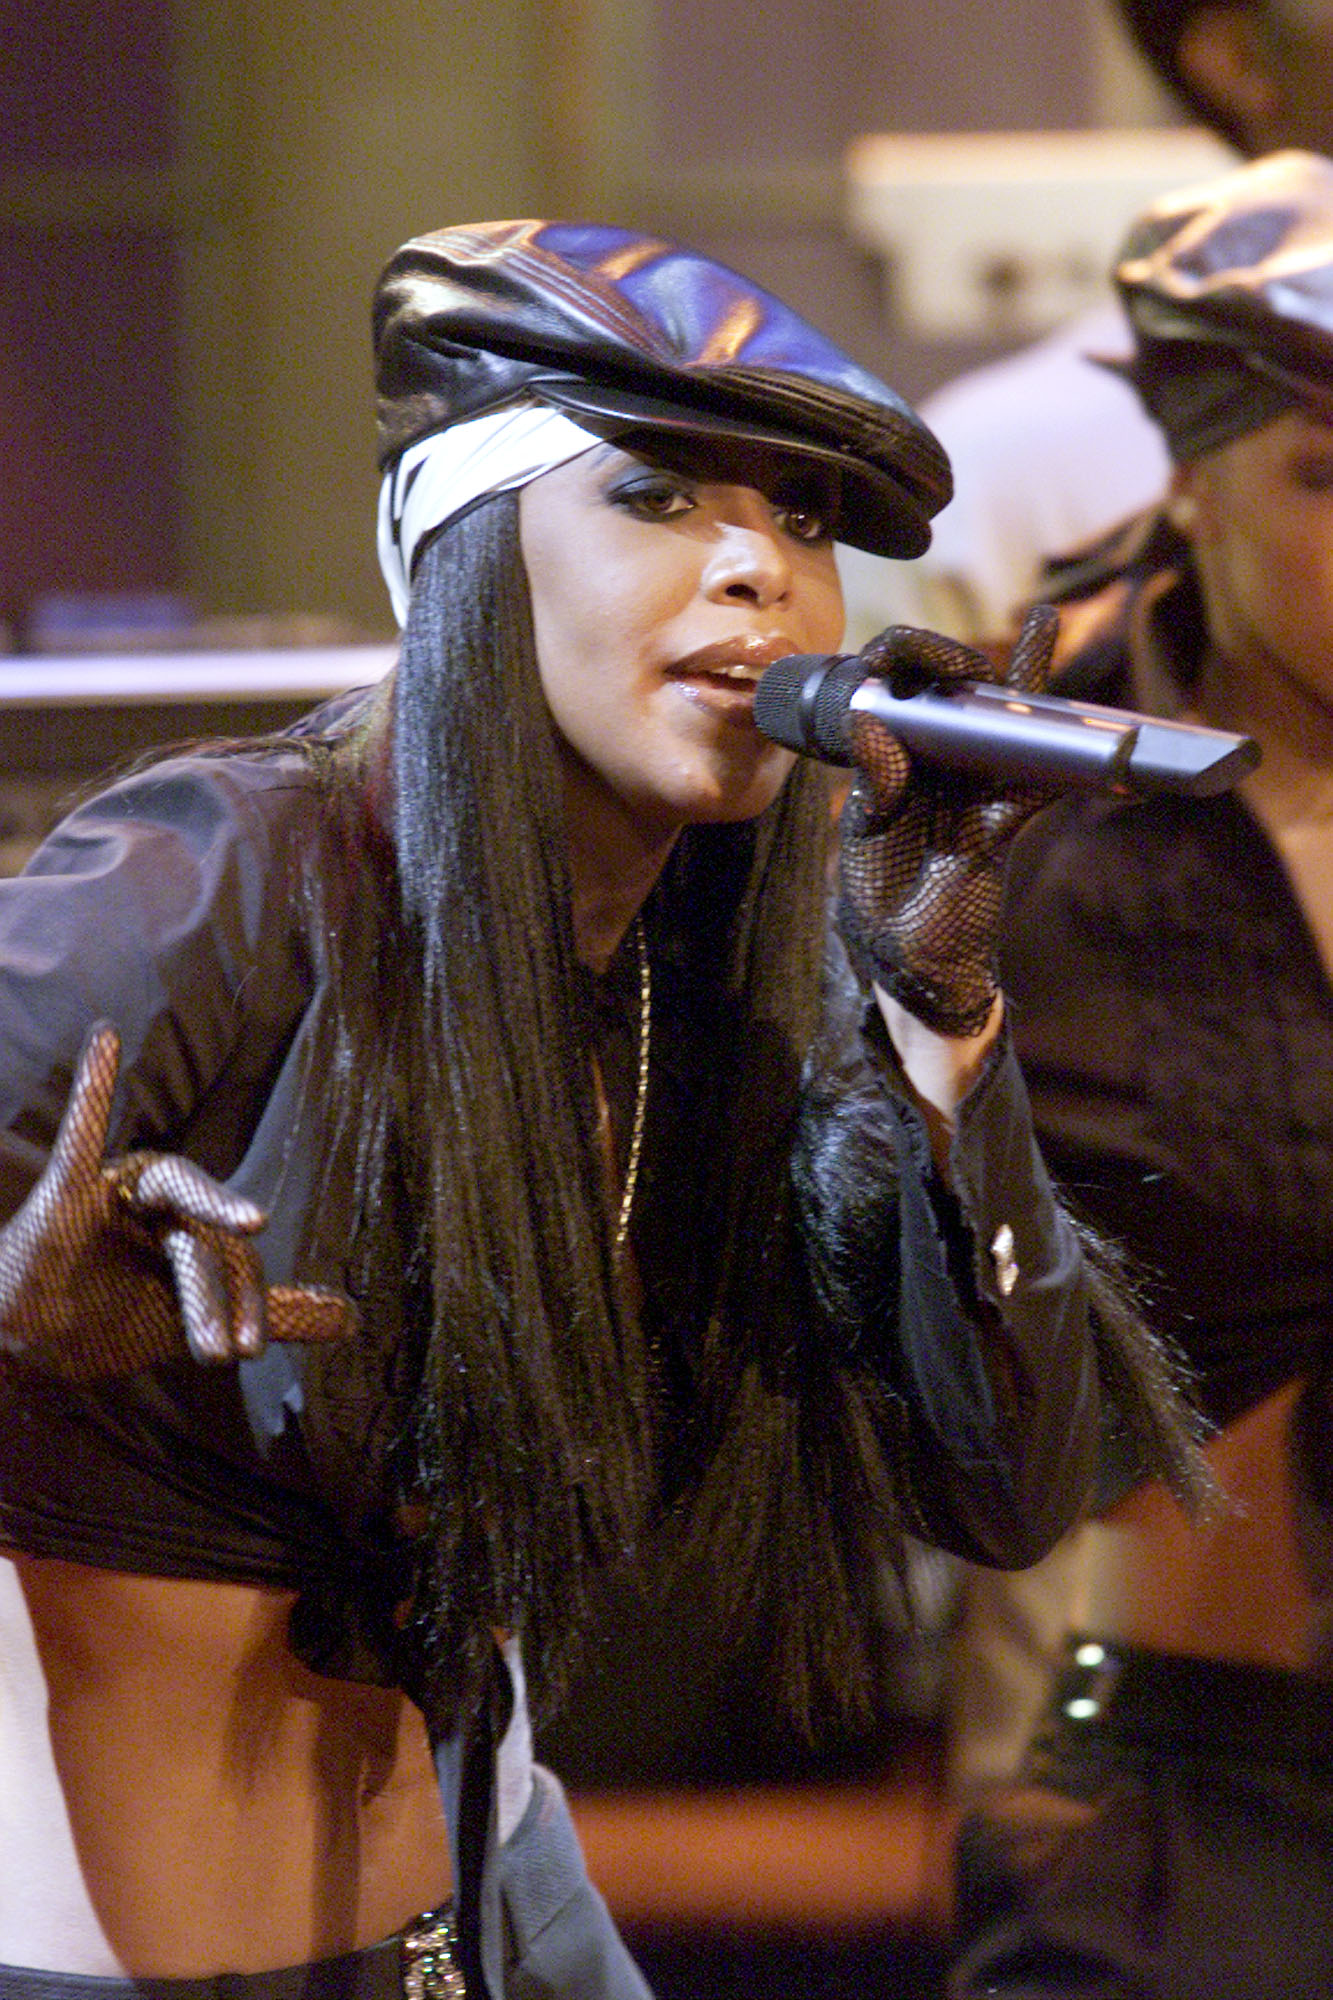 20 years after Aaliyah's death, fans still wonder what could have been - 3215cb4e 6d3c 4285 832d 7ec6d4f57538